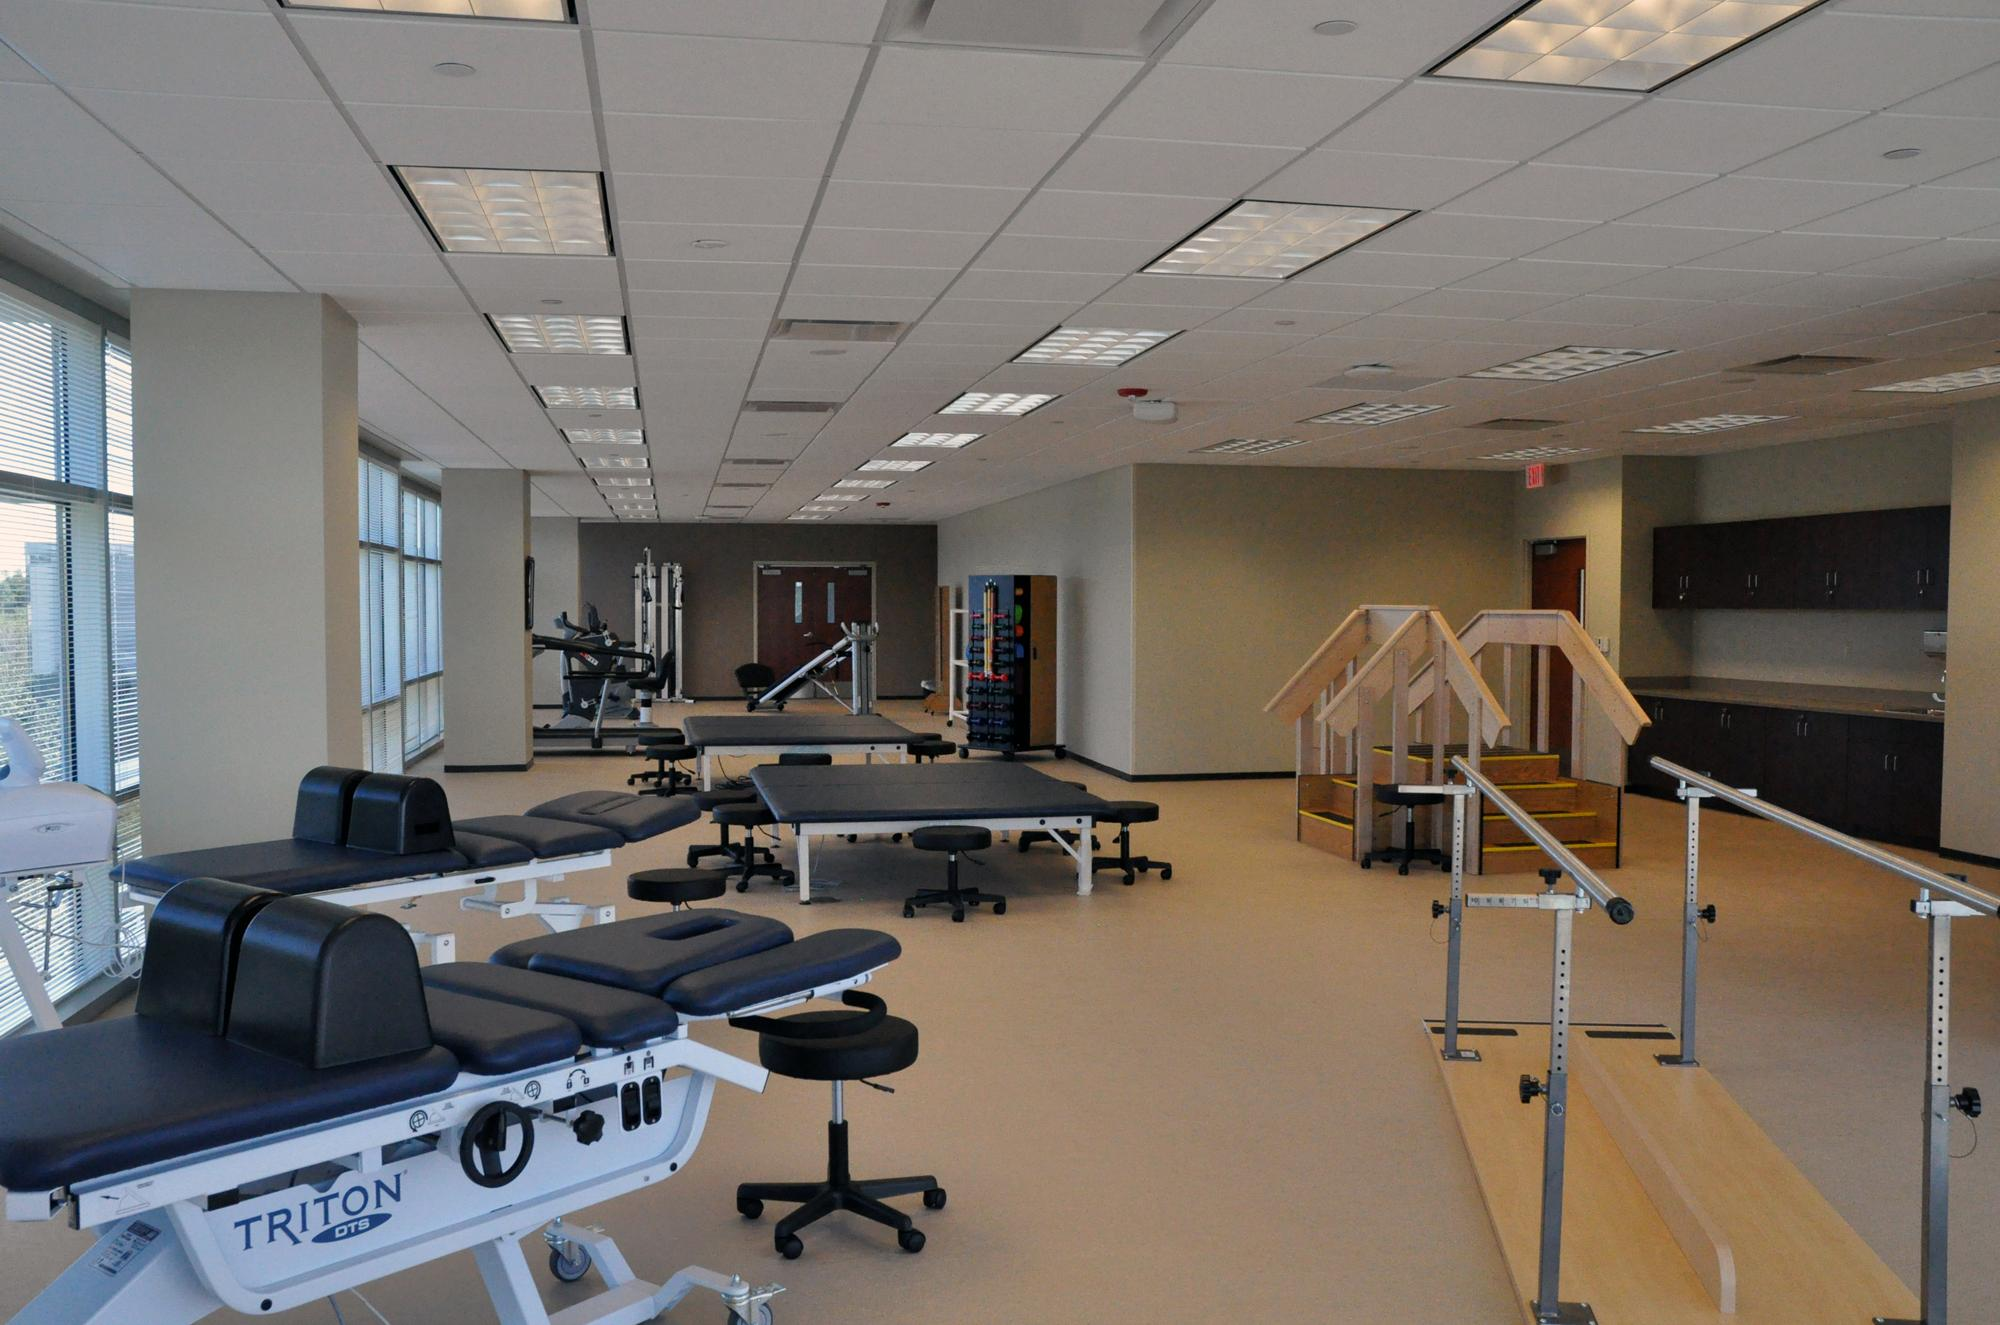 Equipment pediatric physical therapy - Physical Therapy Skills Lab Facility Photo